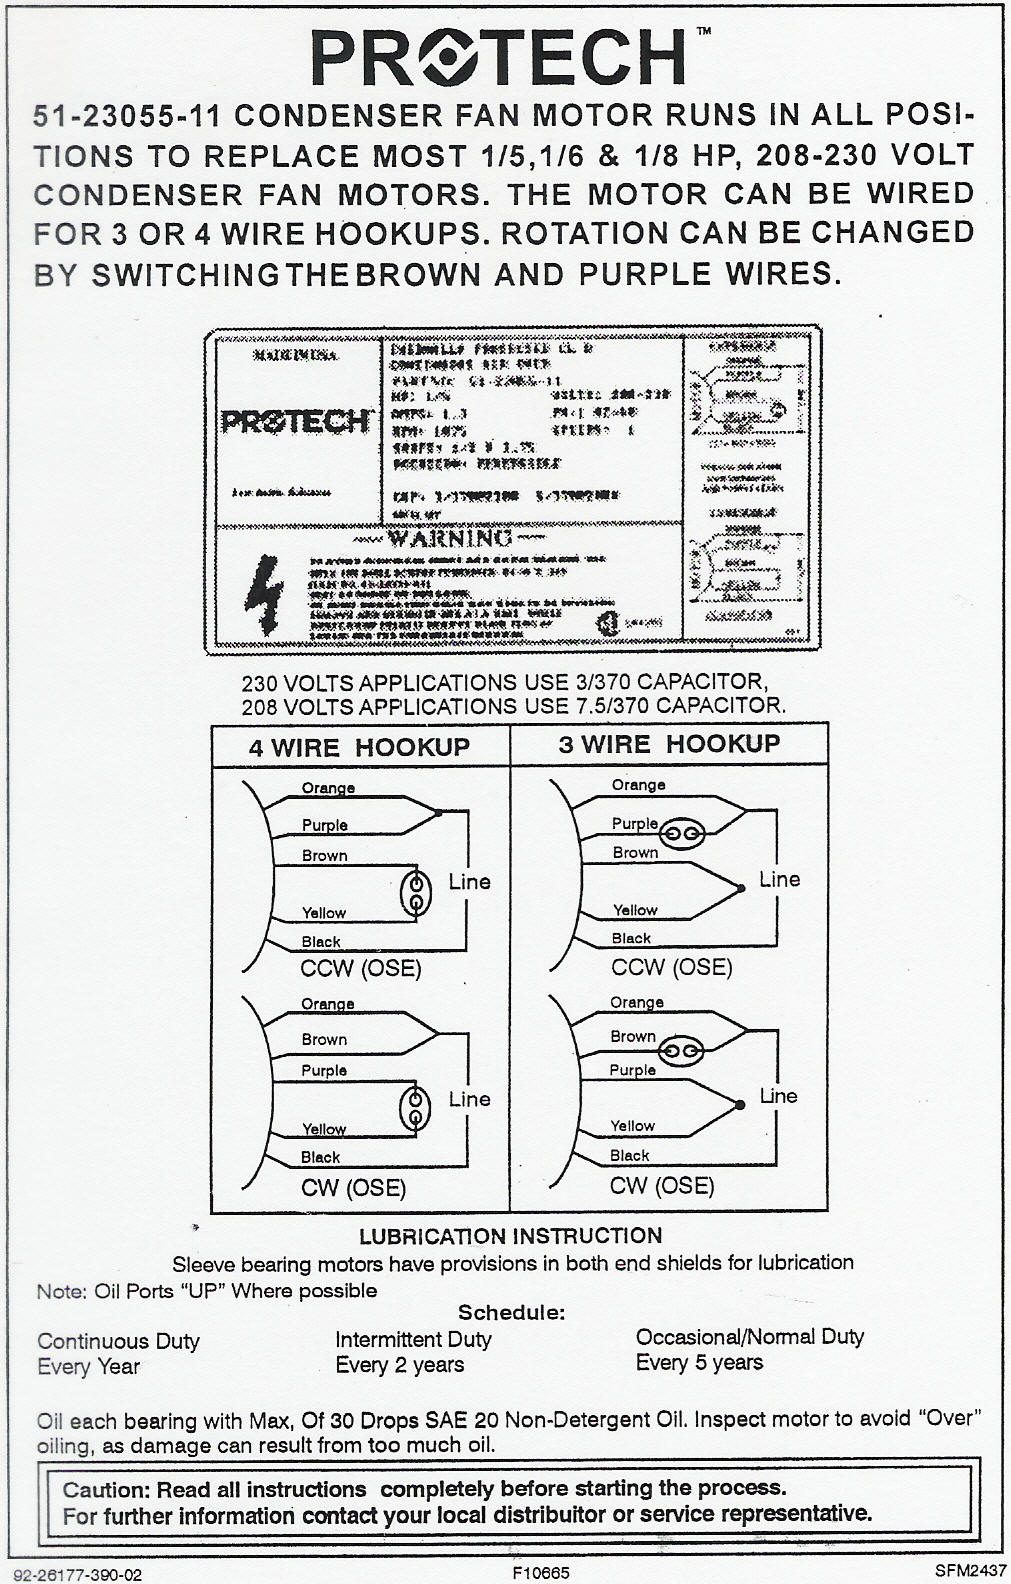 rheem blower motor wiring diagram rheem image rheem ruud condenser fan motor 51 23055 11 wiring diagram on rheem blower motor wiring diagram